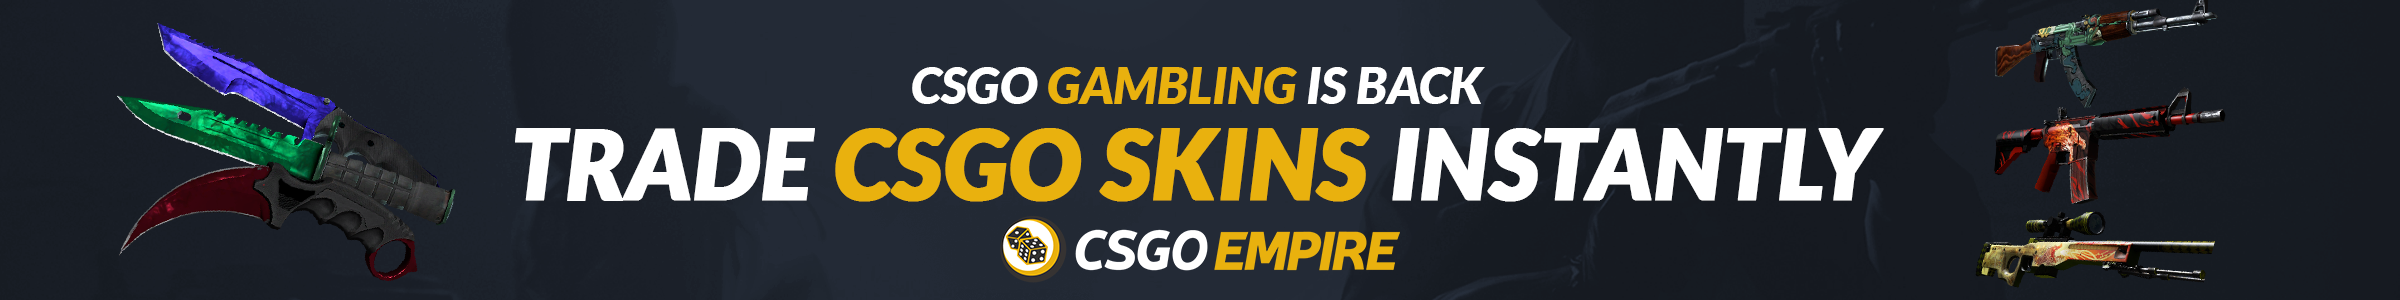 https://cdn.discordapp.com/attachments/354257446690357250/569468766145216532/csgoempire_banner.png